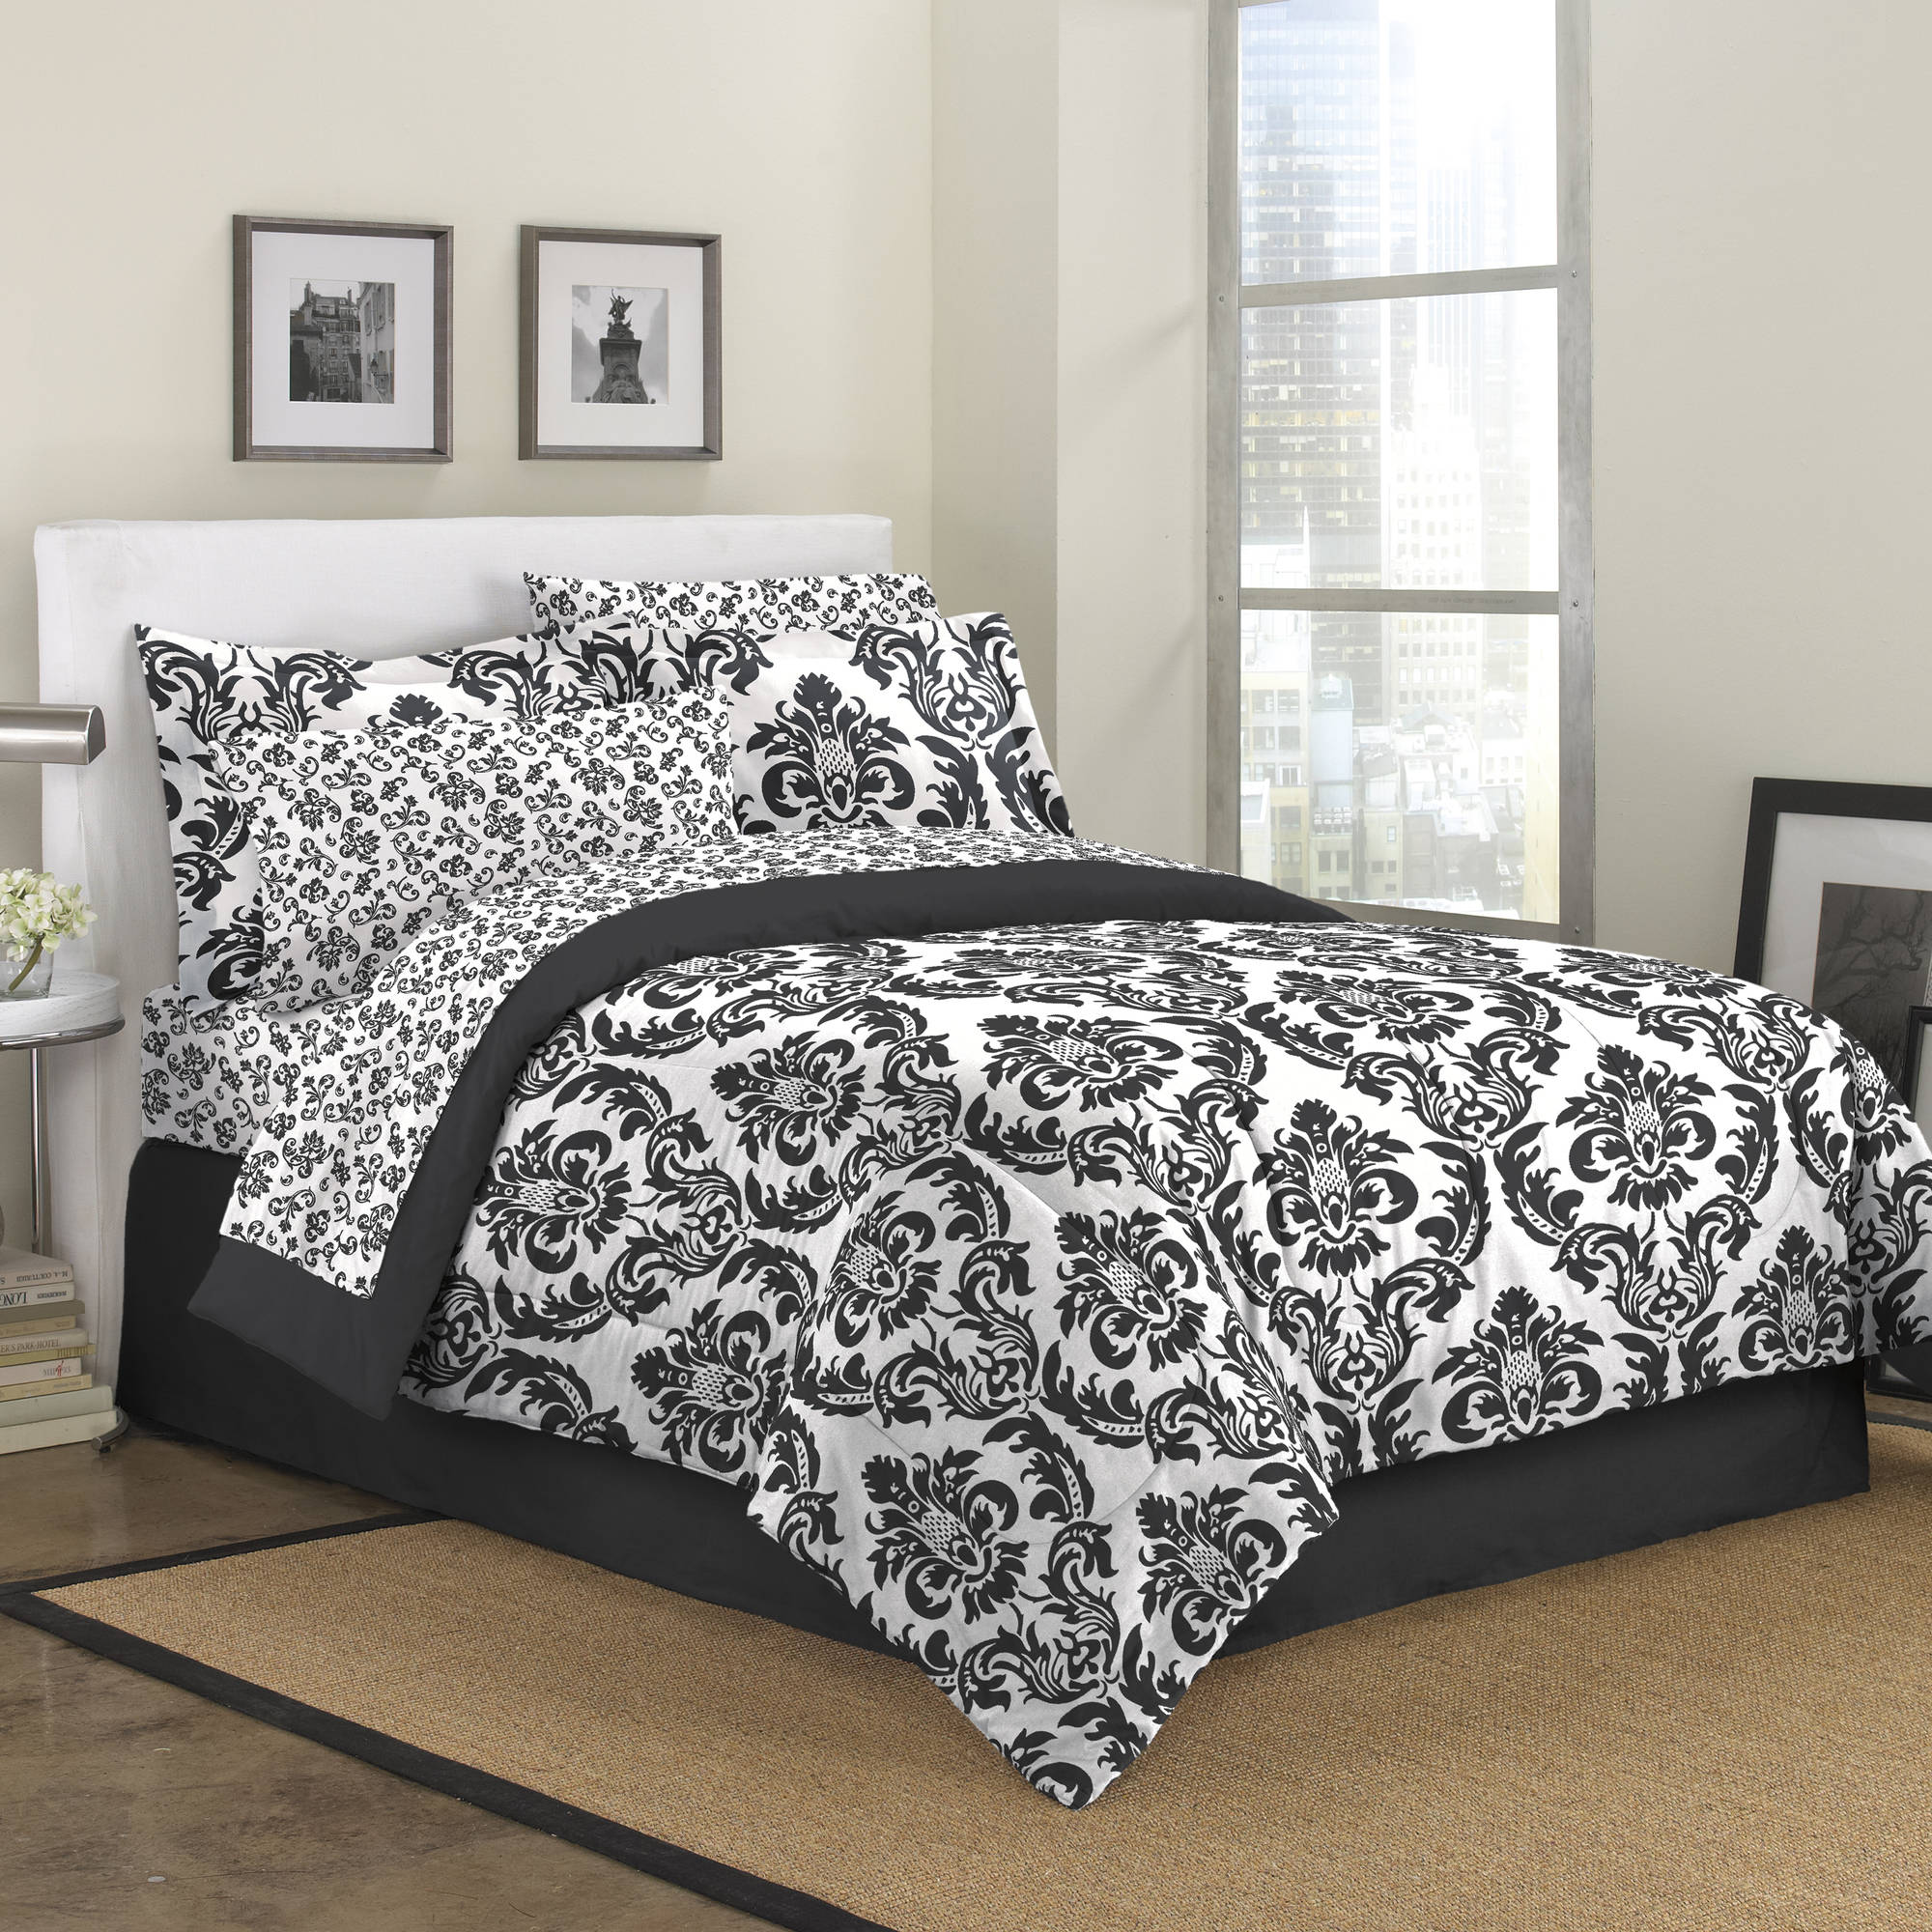 First At Home Marcheline Damask Bed in a Bag Bedding Set, Black